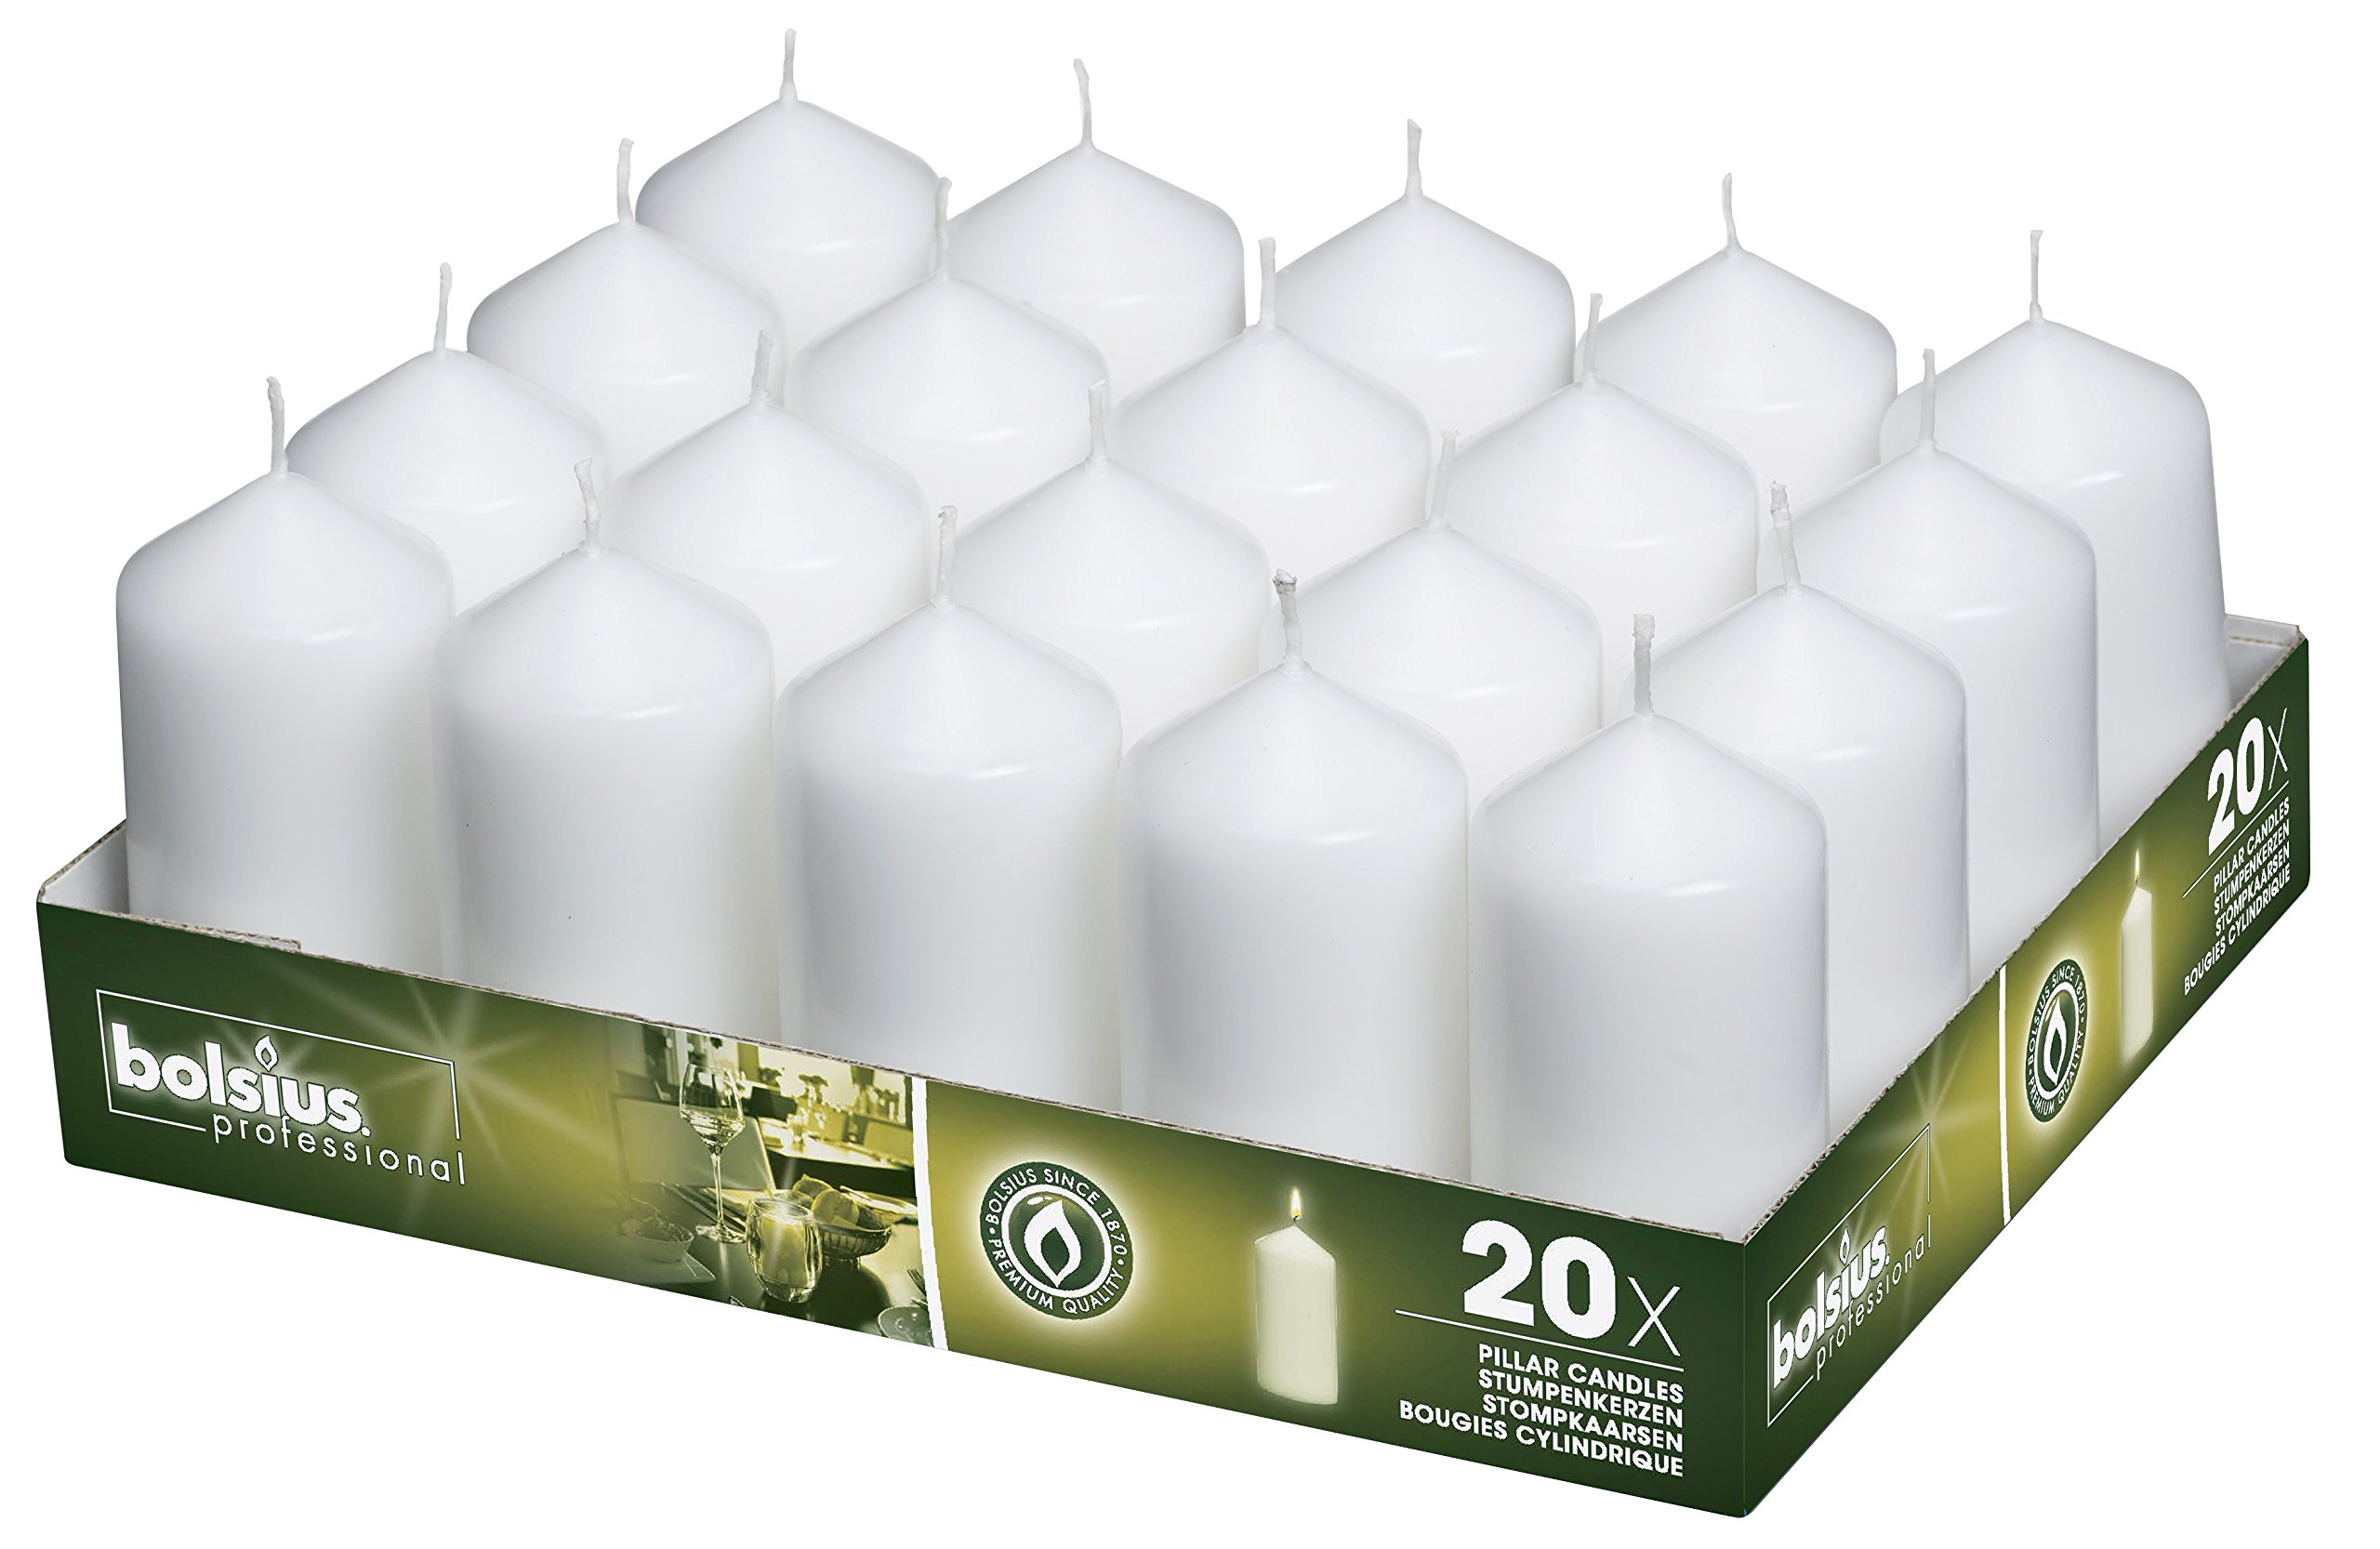 BOLSIUS Tray of 20 White Pillar Candles - 18 Hours Burning Time Candle Set - 2-inch x 4-inch Dripless Candle - Perfect for Wedding Candles, Parties and Special Occasions by BOLSIUS